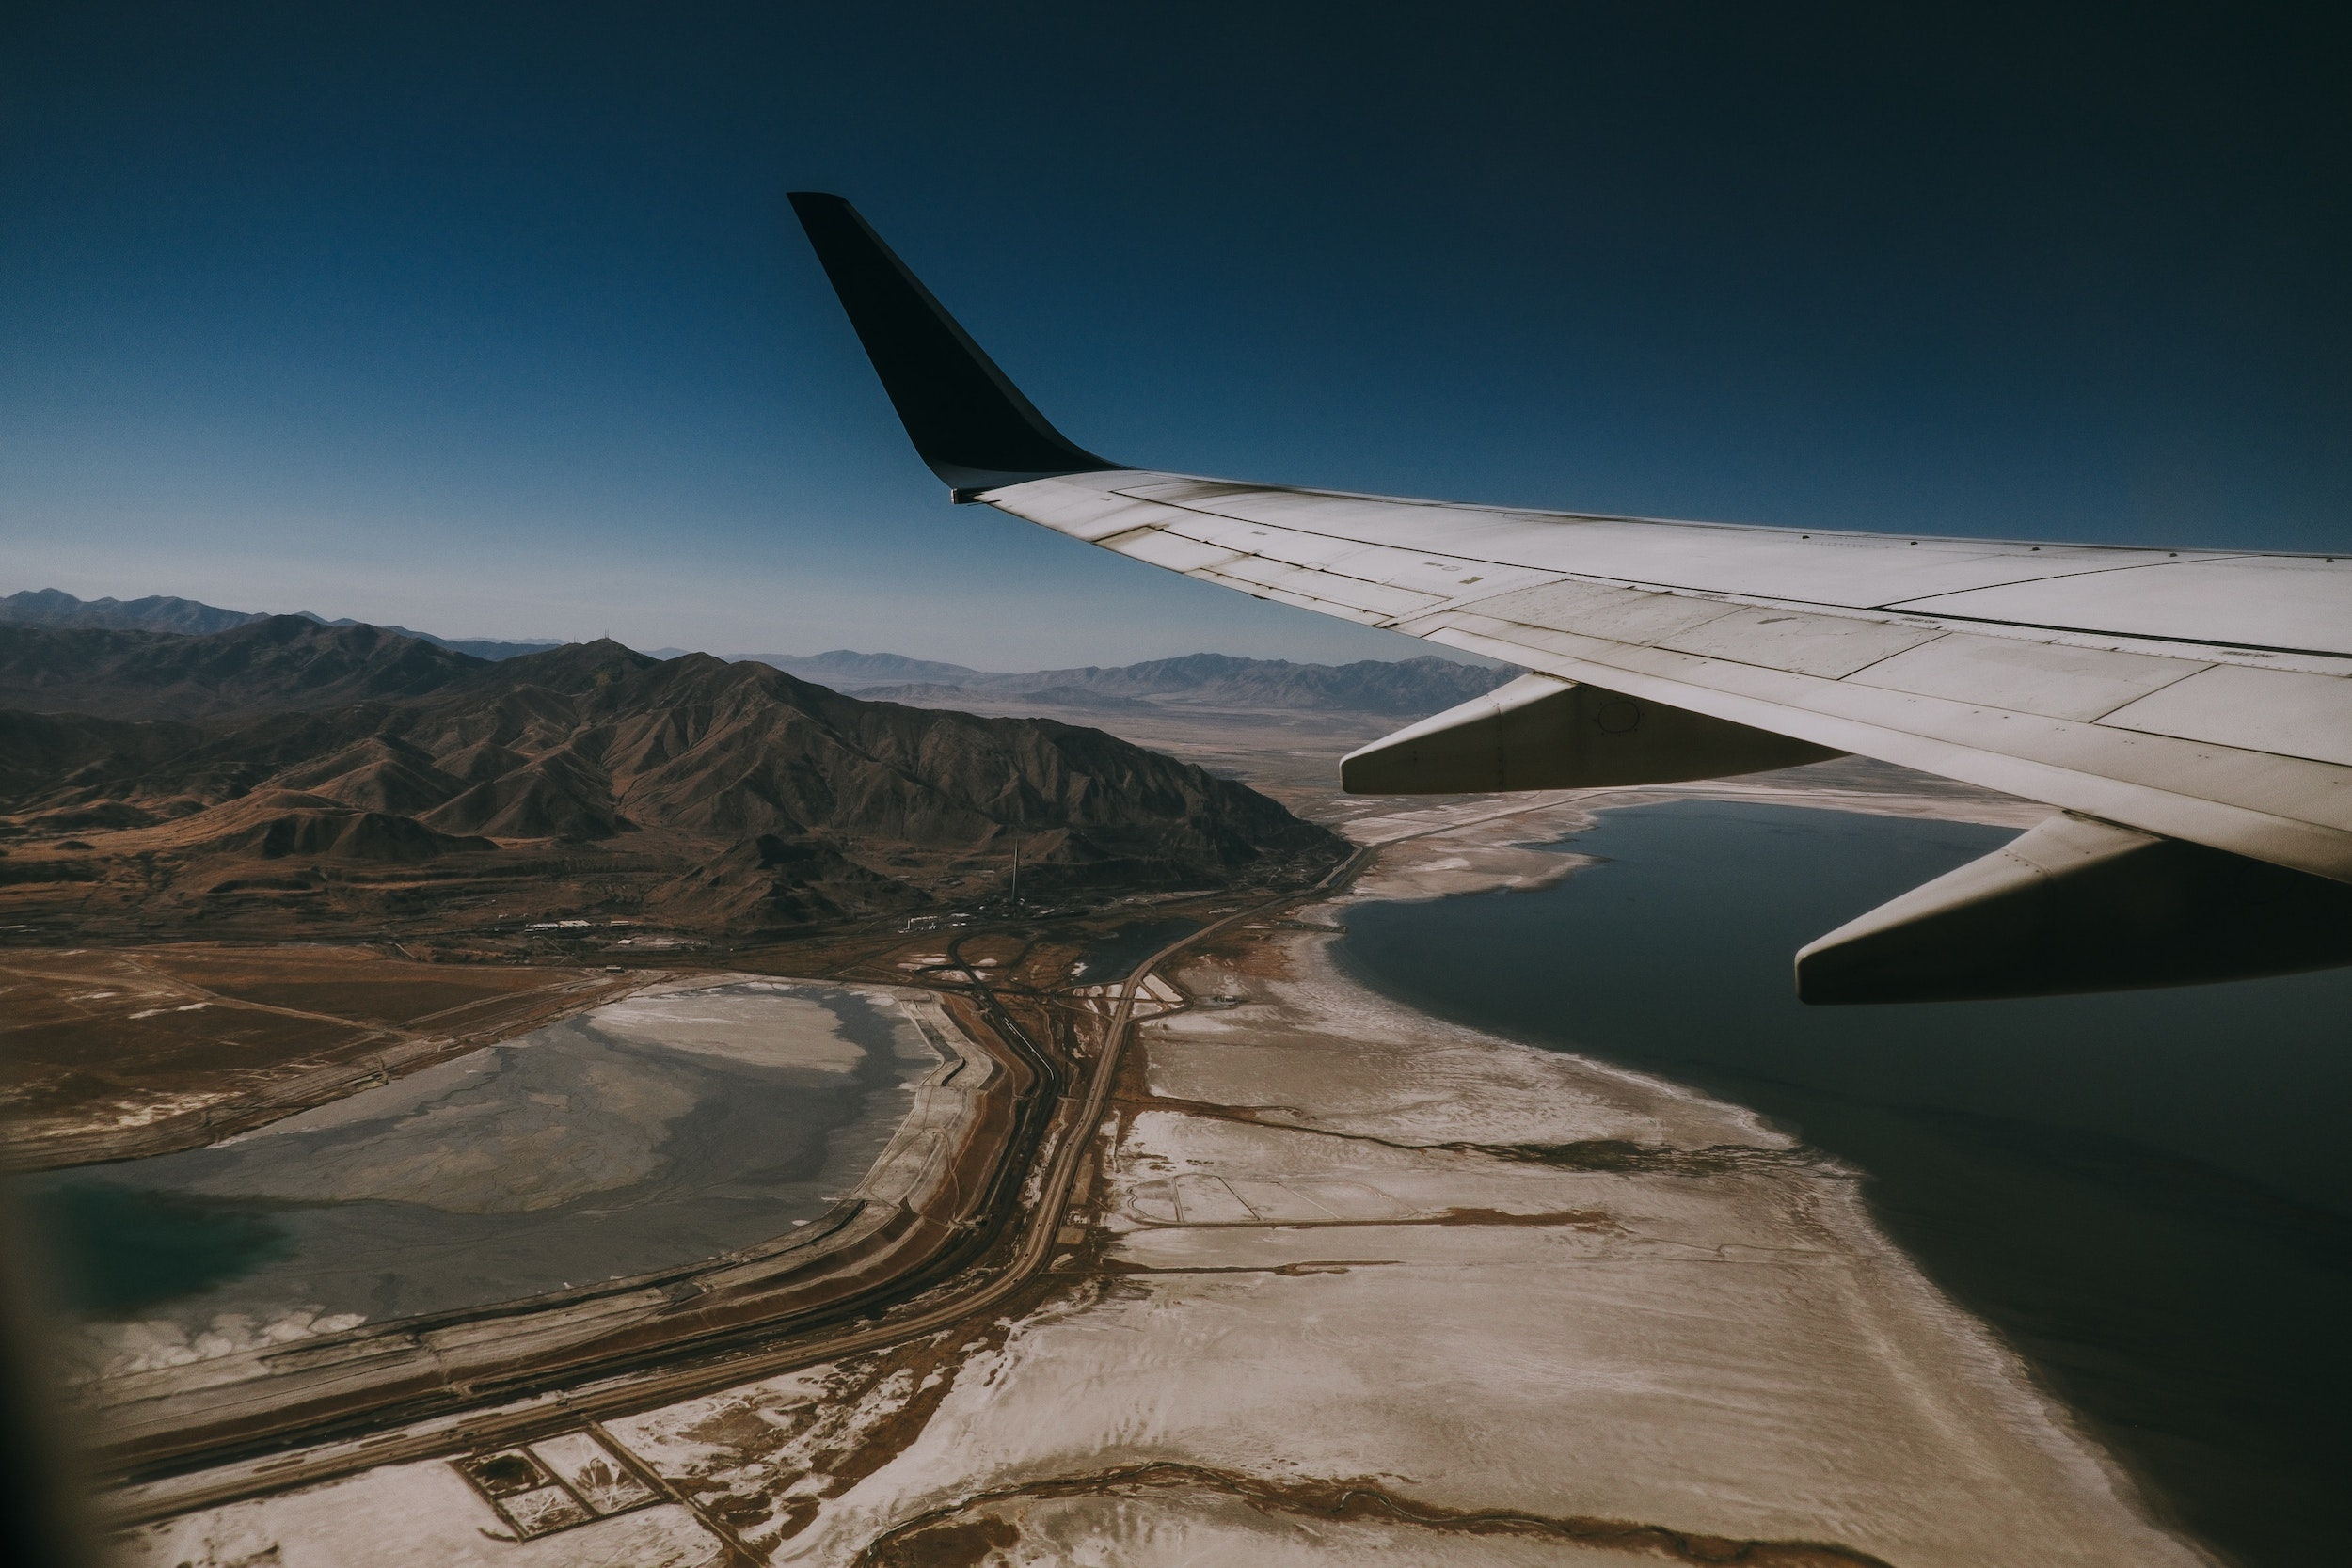 View of Salt Lake City from a plane